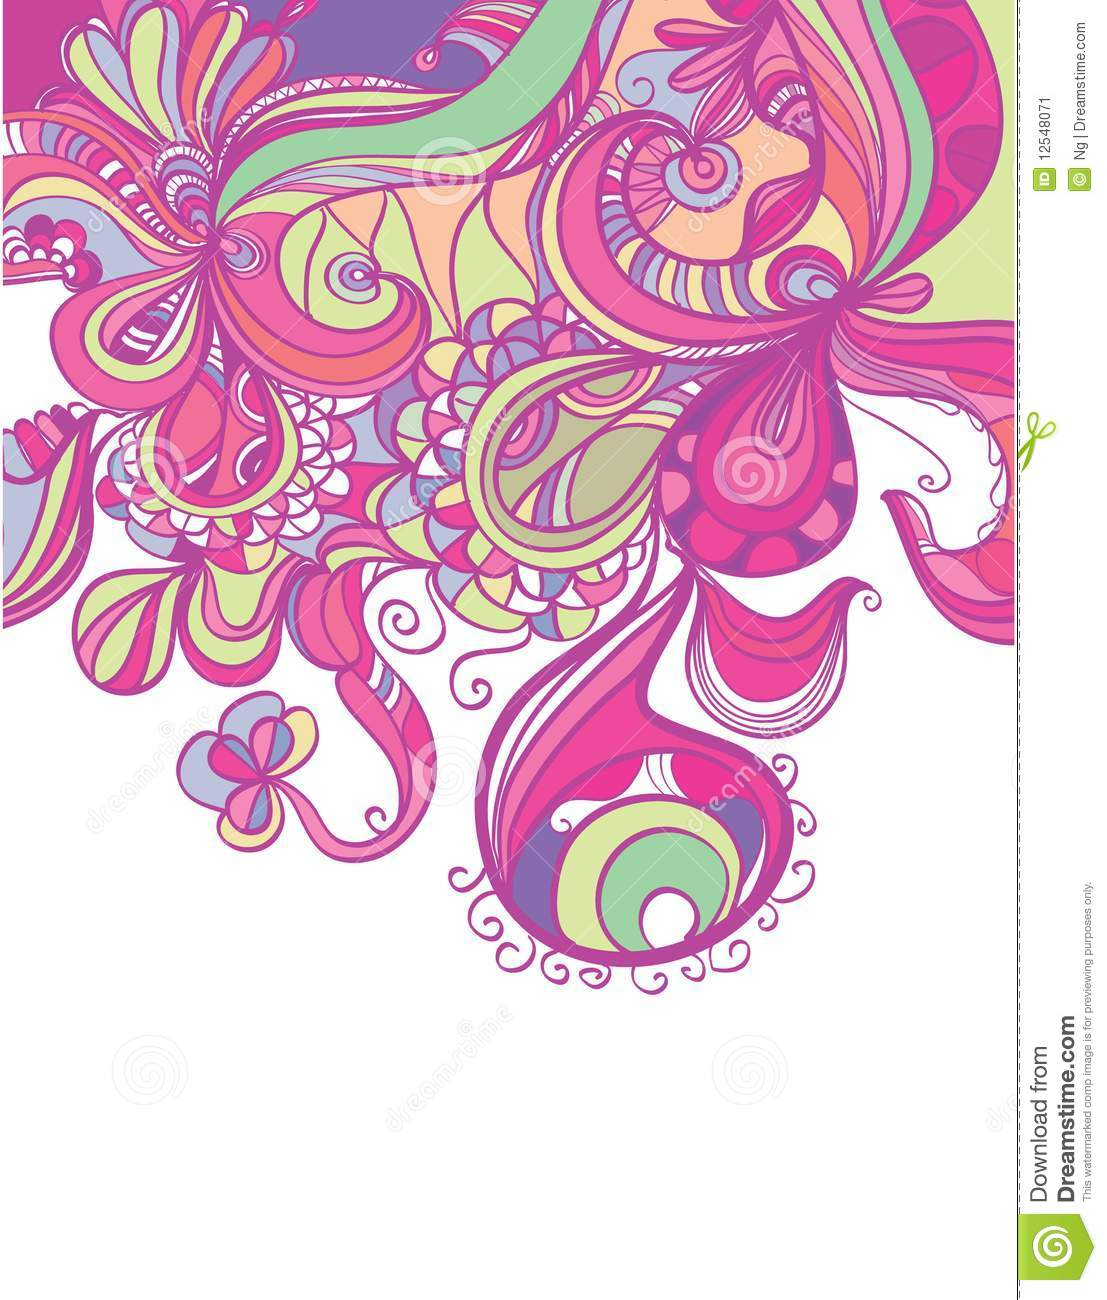 Trendy abstract border design